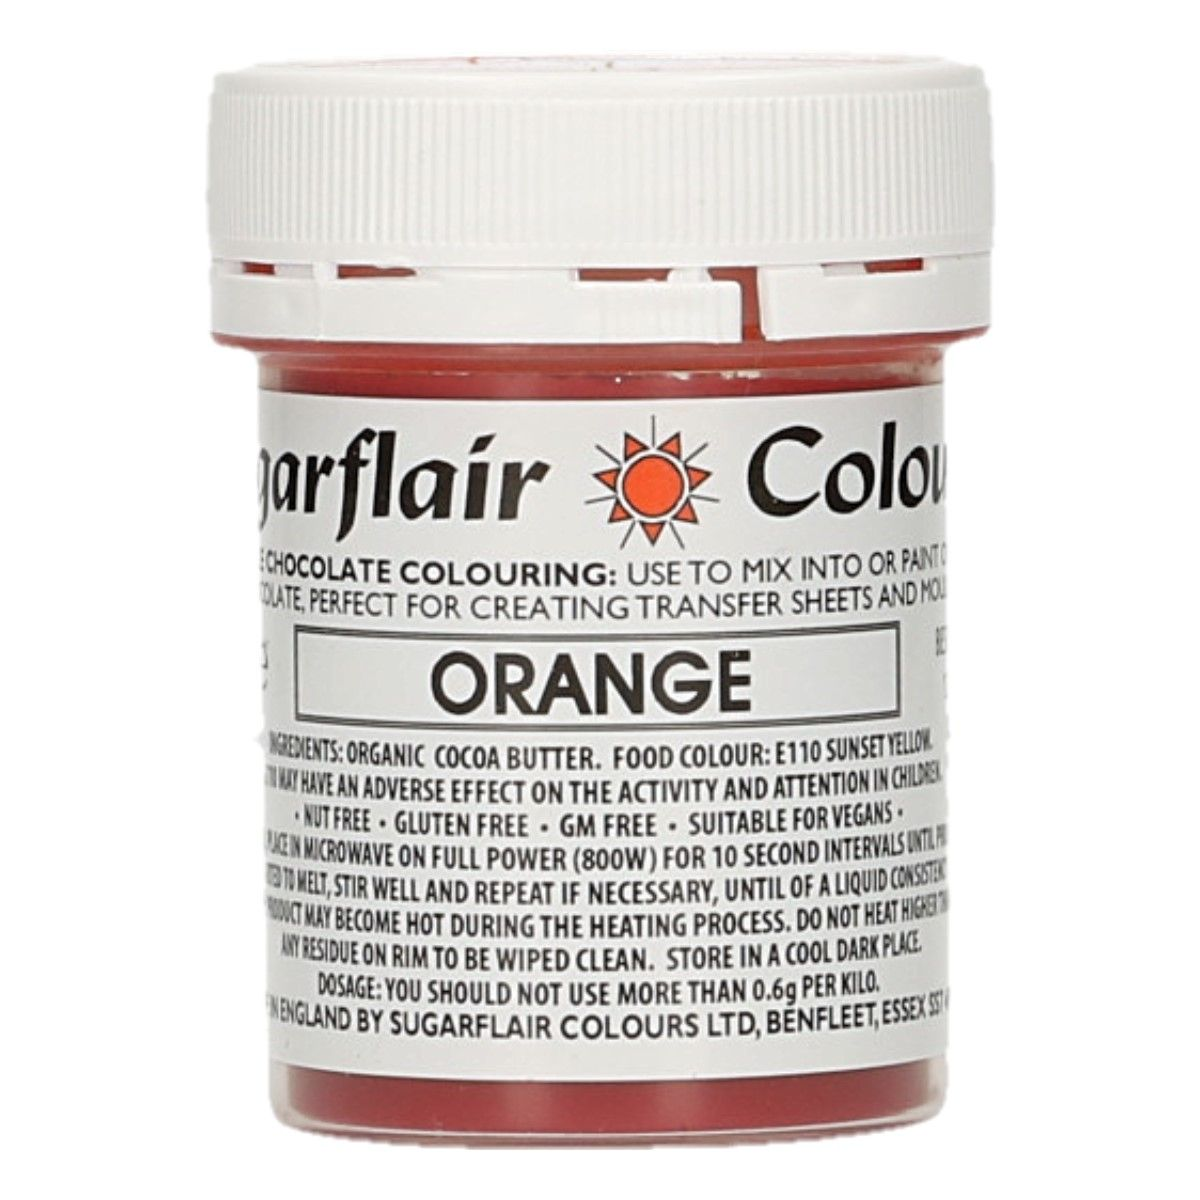 Sugarflair Chocolate Colour Orange 35g